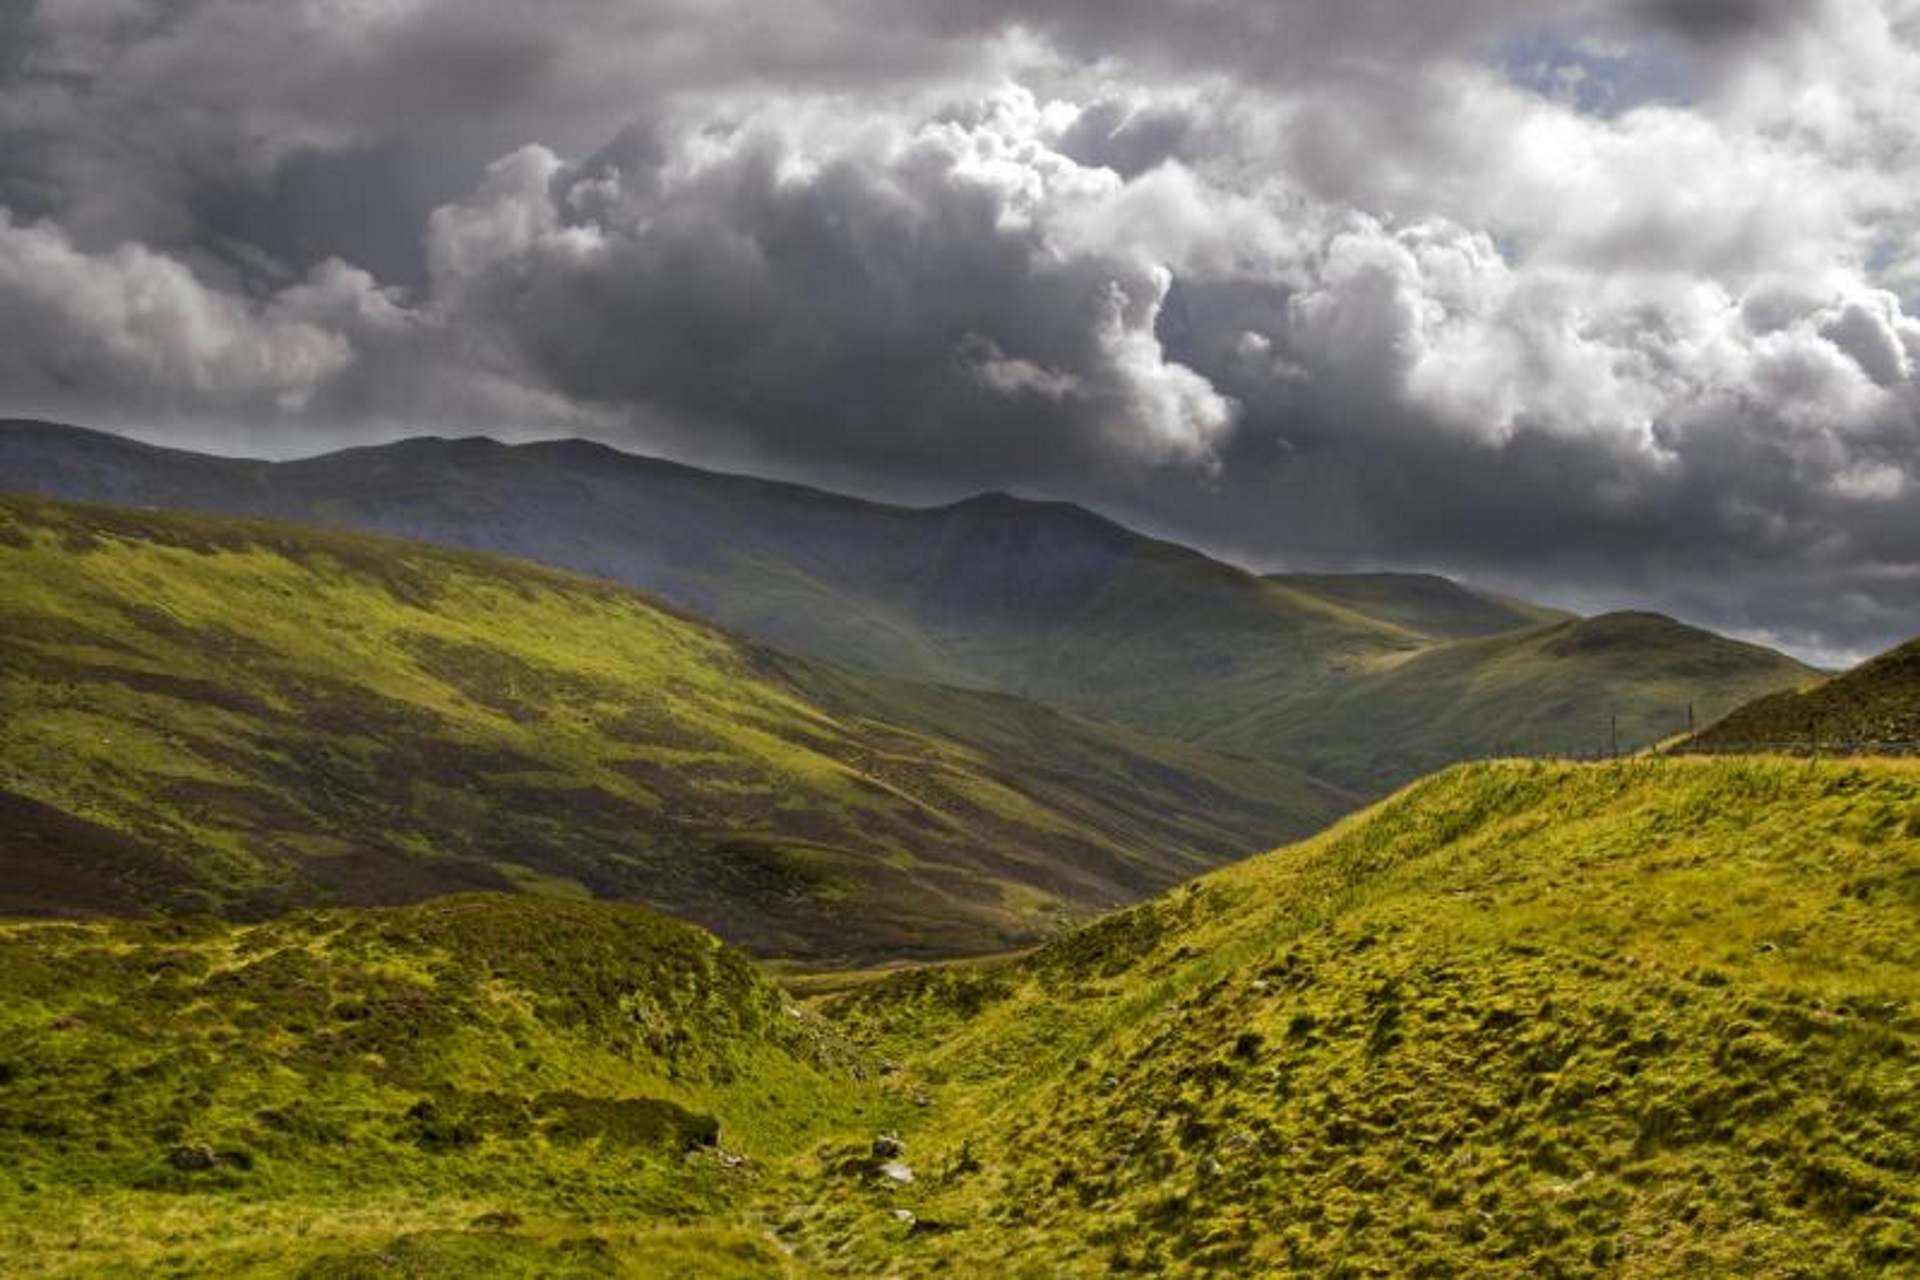 Magnificent Highland scenery